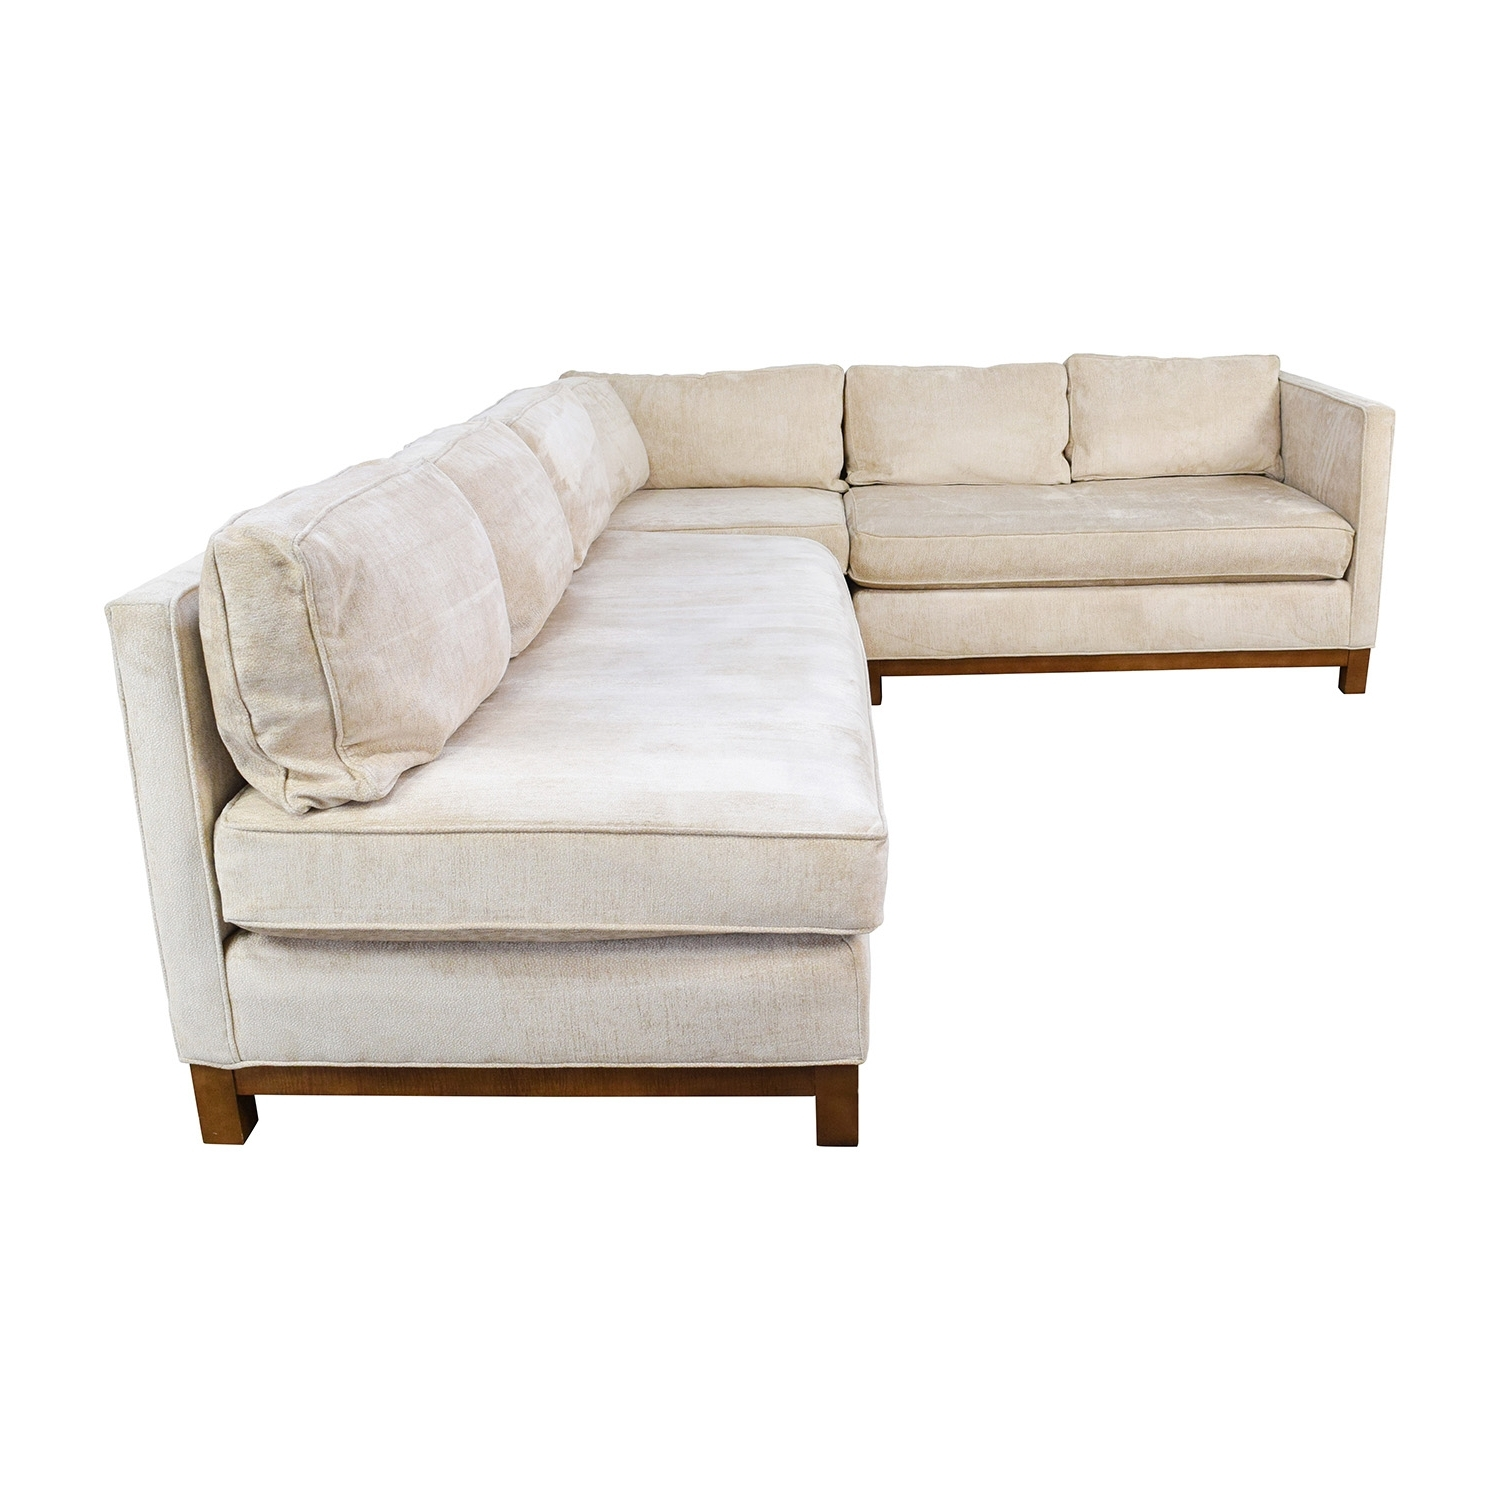 [%76% Off – Mitchell Gold And Bob Williams Mitchell Gold + Bob Throughout Most Recent Gold Sectional Sofas|Gold Sectional Sofas Regarding Popular 76% Off – Mitchell Gold And Bob Williams Mitchell Gold + Bob|Well Known Gold Sectional Sofas Inside 76% Off – Mitchell Gold And Bob Williams Mitchell Gold + Bob|Well Known 76% Off – Mitchell Gold And Bob Williams Mitchell Gold + Bob Regarding Gold Sectional Sofas%] (View 2 of 20)